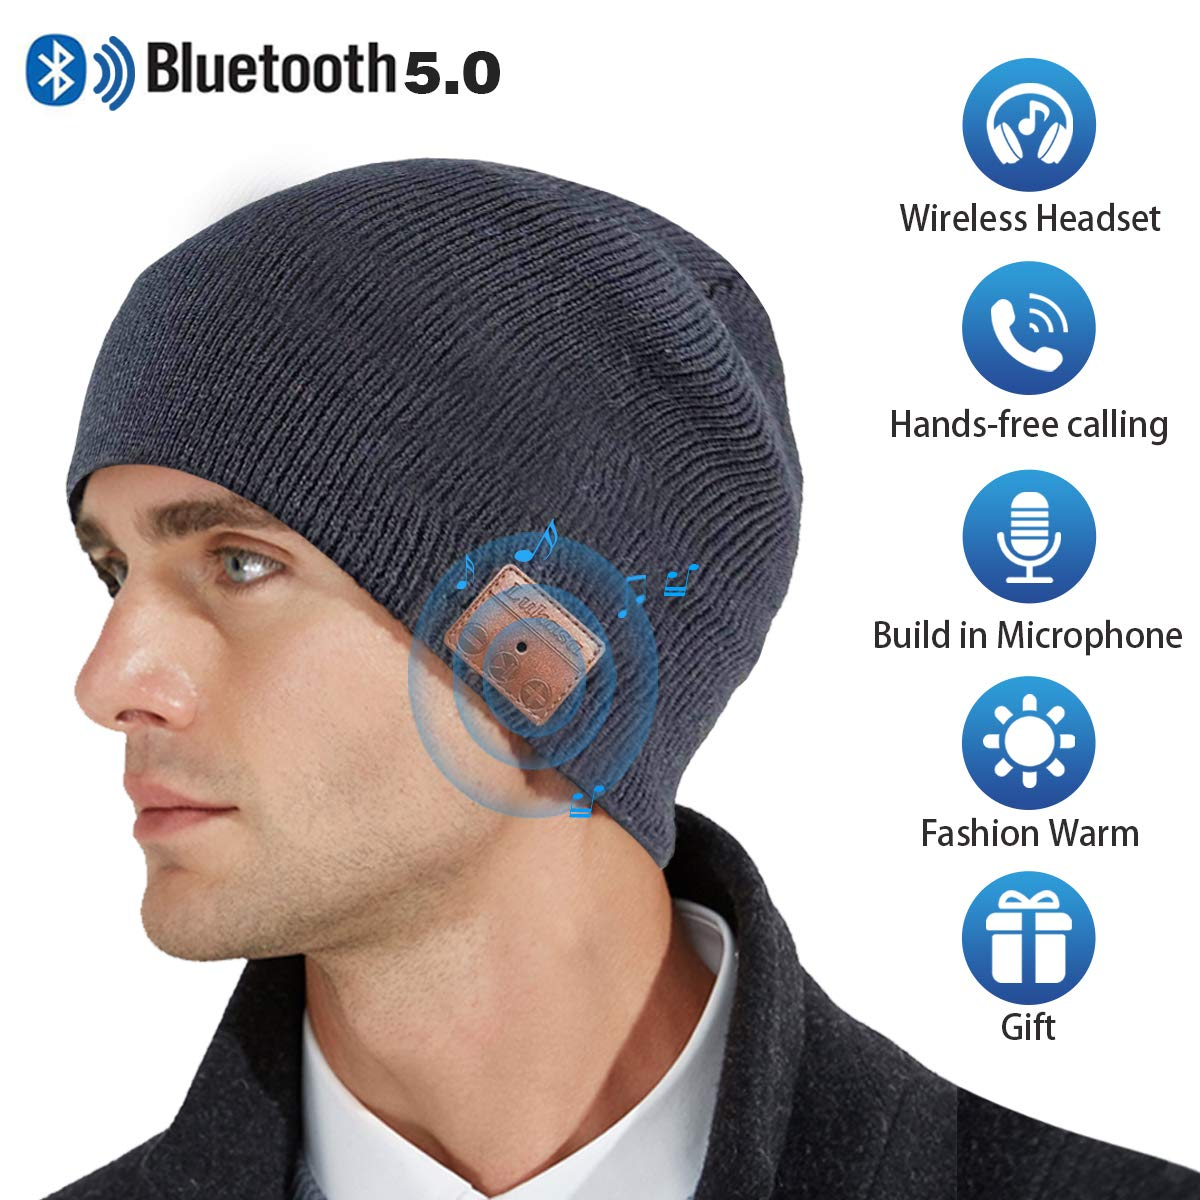 Upgraded Bluetooth Beanie Hat,V5.0 Wireless Headphones Headset Music Hat Unisex Winter Knit Cap Built-in Stereo Speakers Microphone Siri Unique Christmas Tech Gifts for Boyfriend Women Men(Gray) by Lukasa